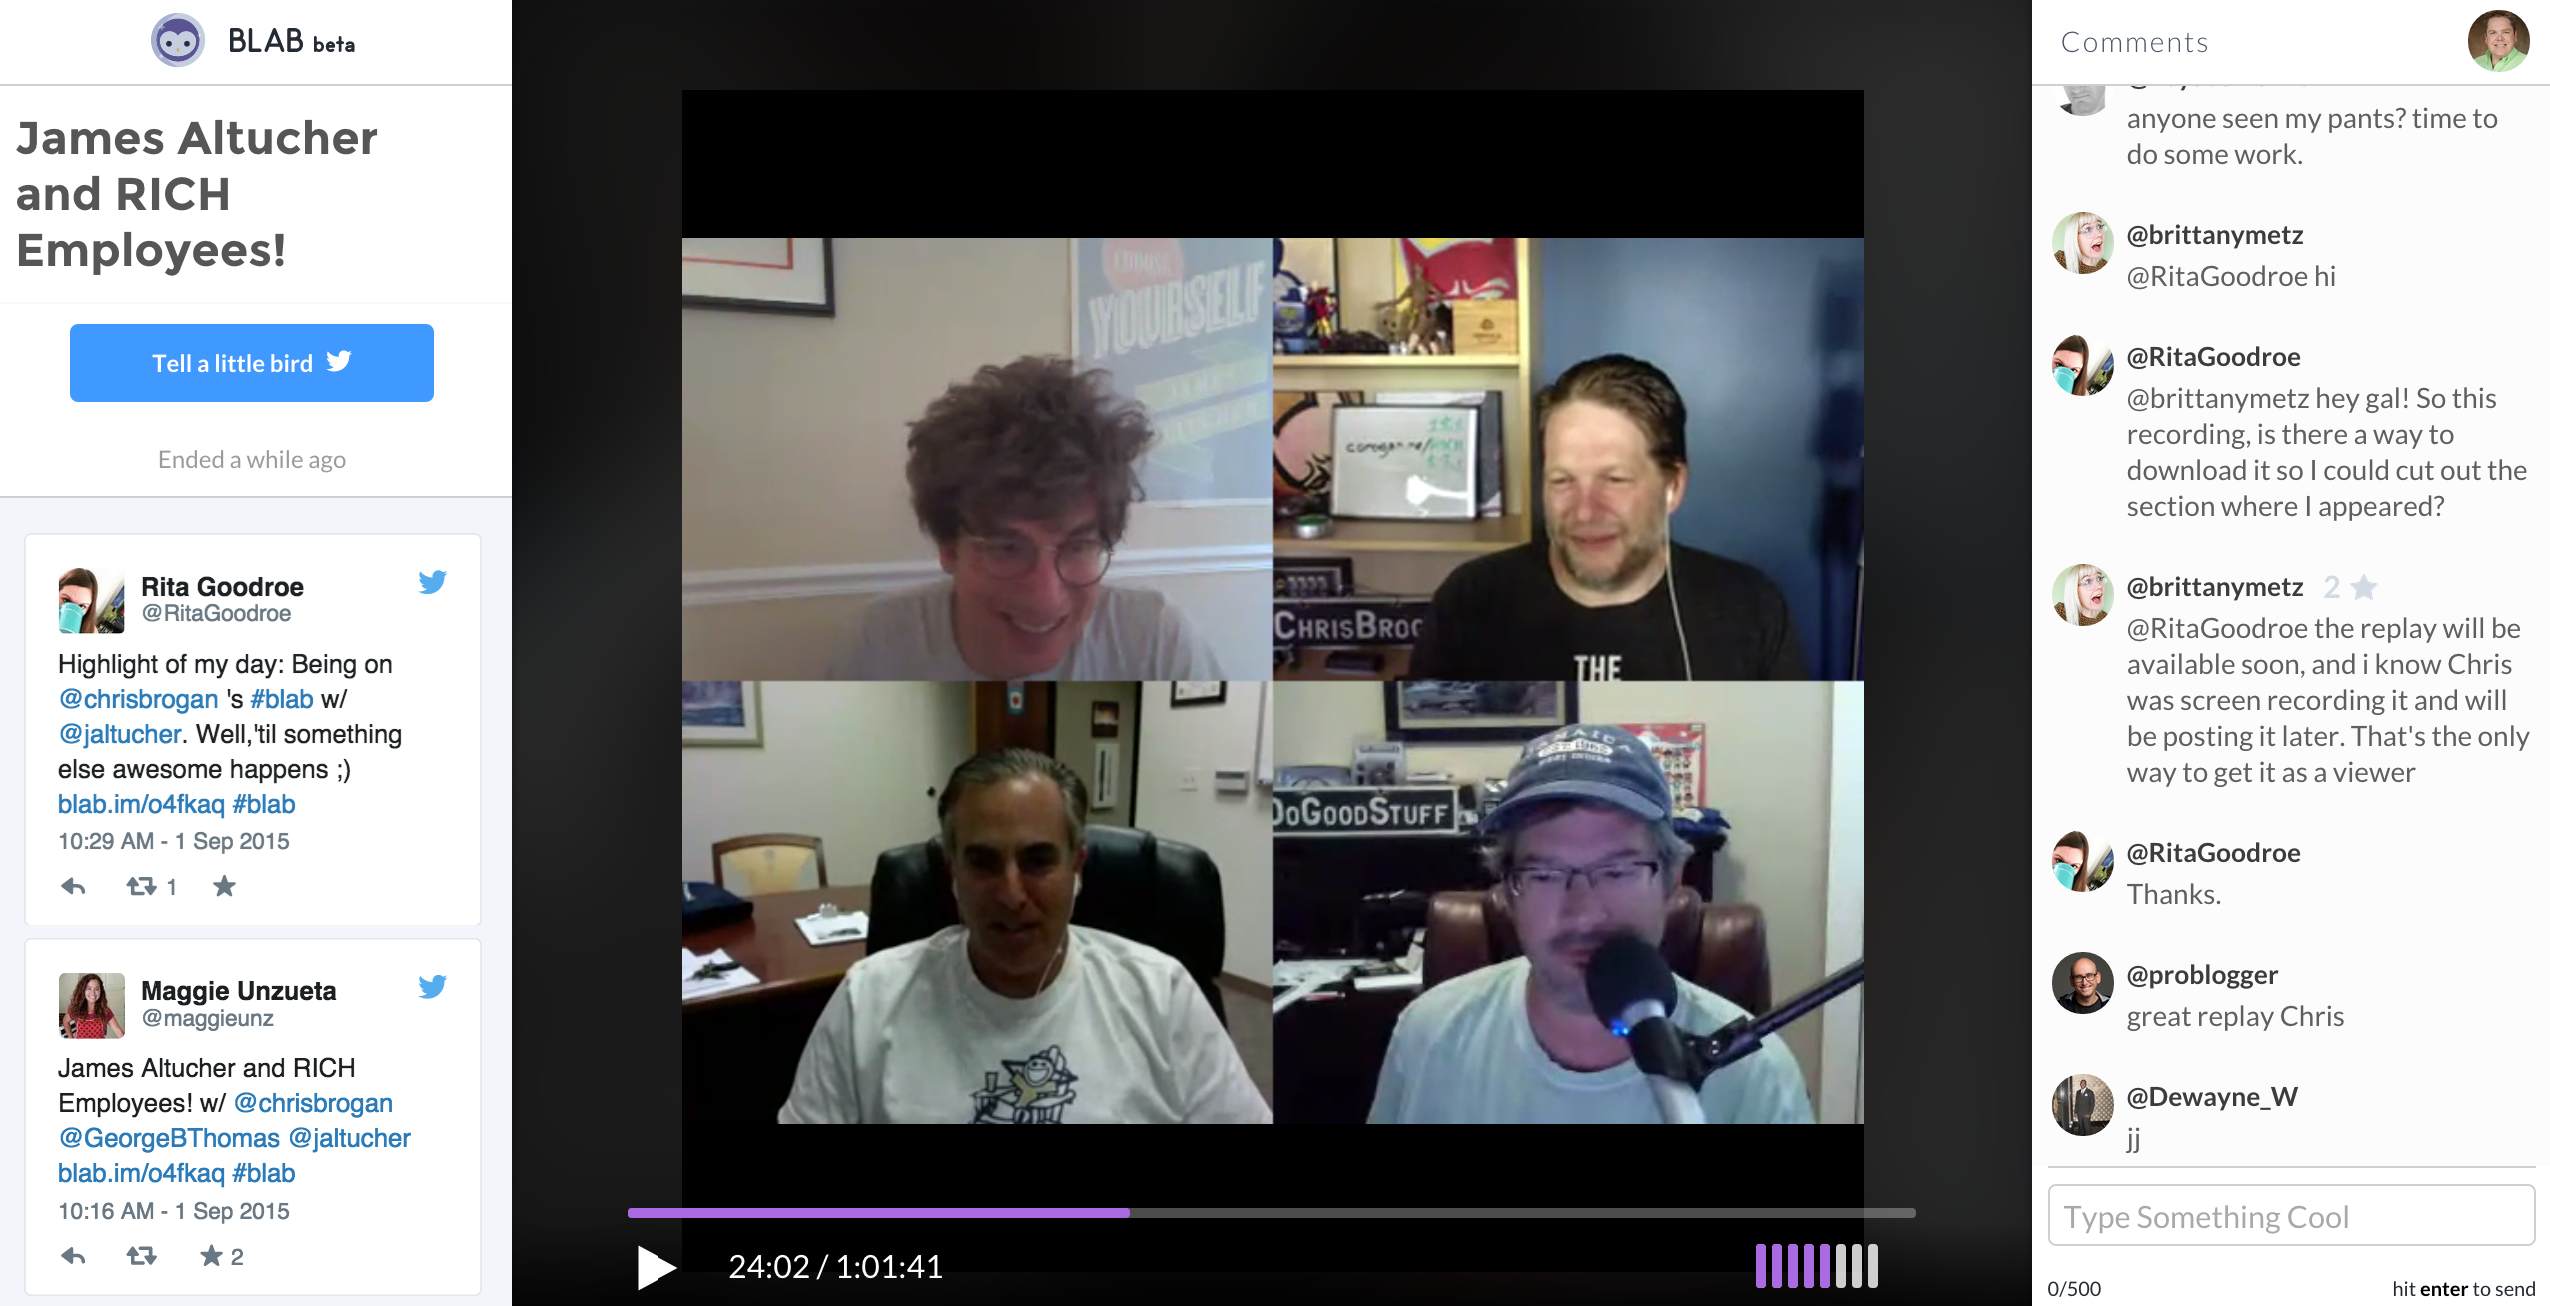 Chris Brogam with James Altucher and RICH Employees! on blab